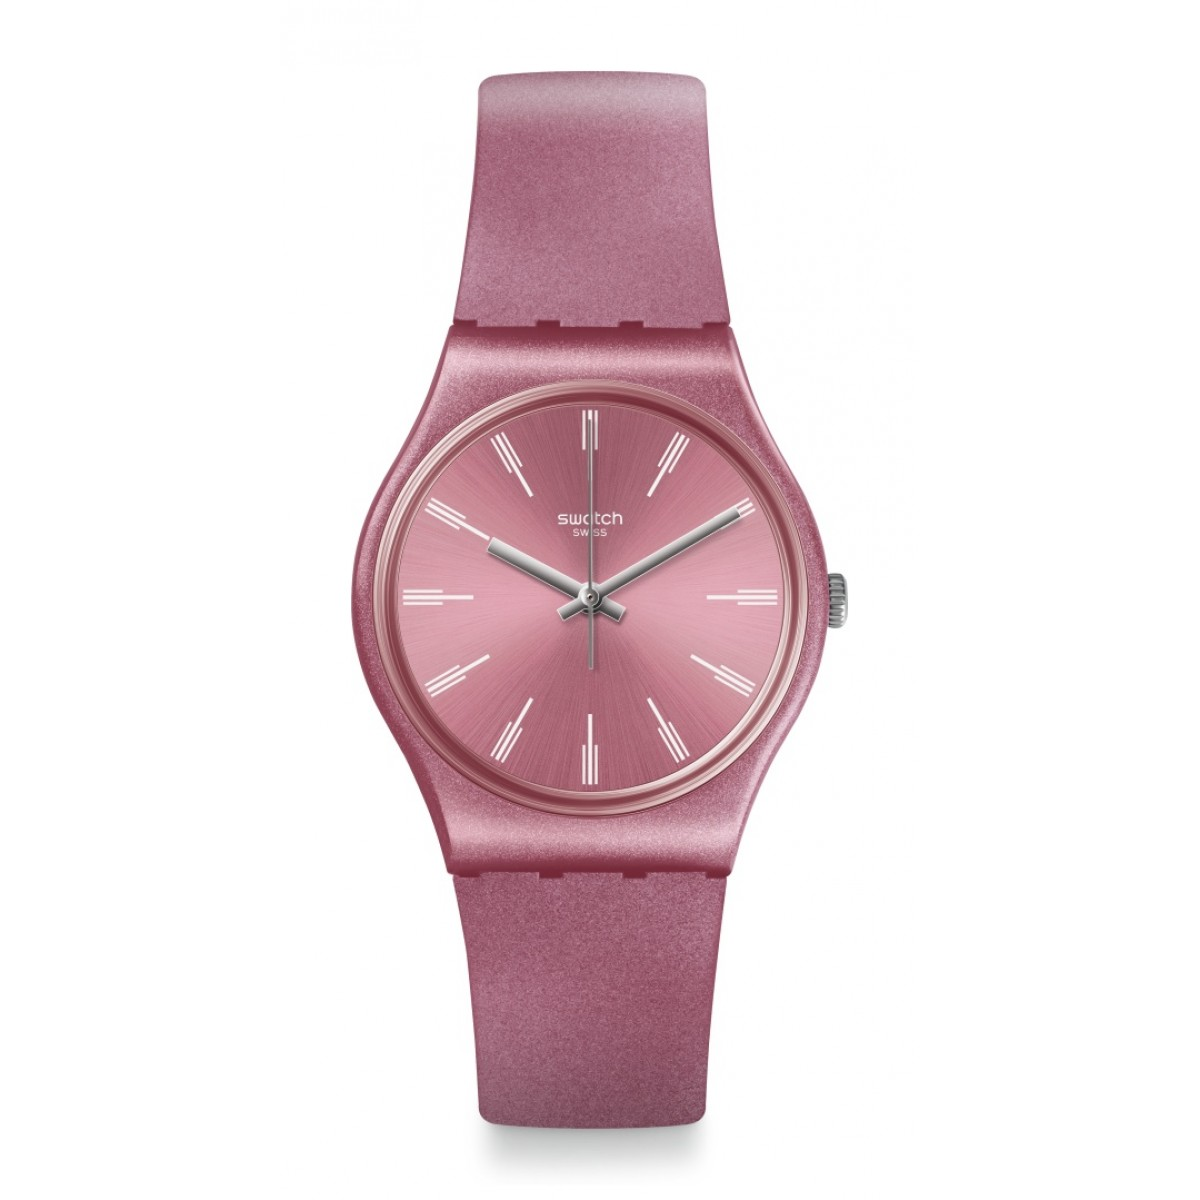 Genskie_chasy_Swatch (24)